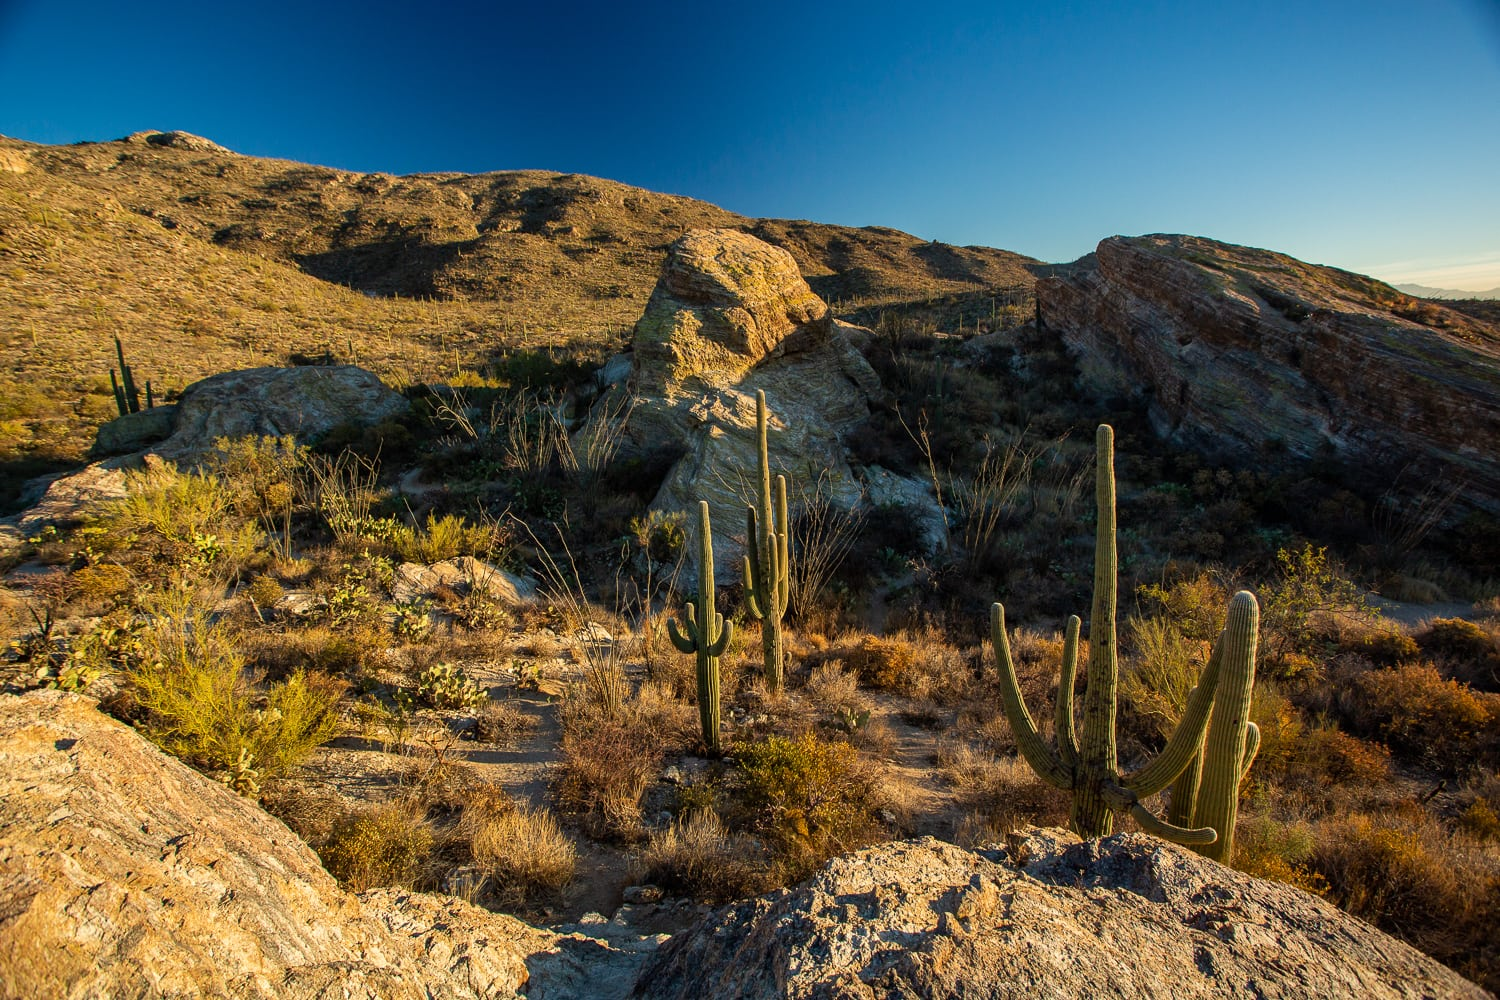 An east saguaro national park elopement location